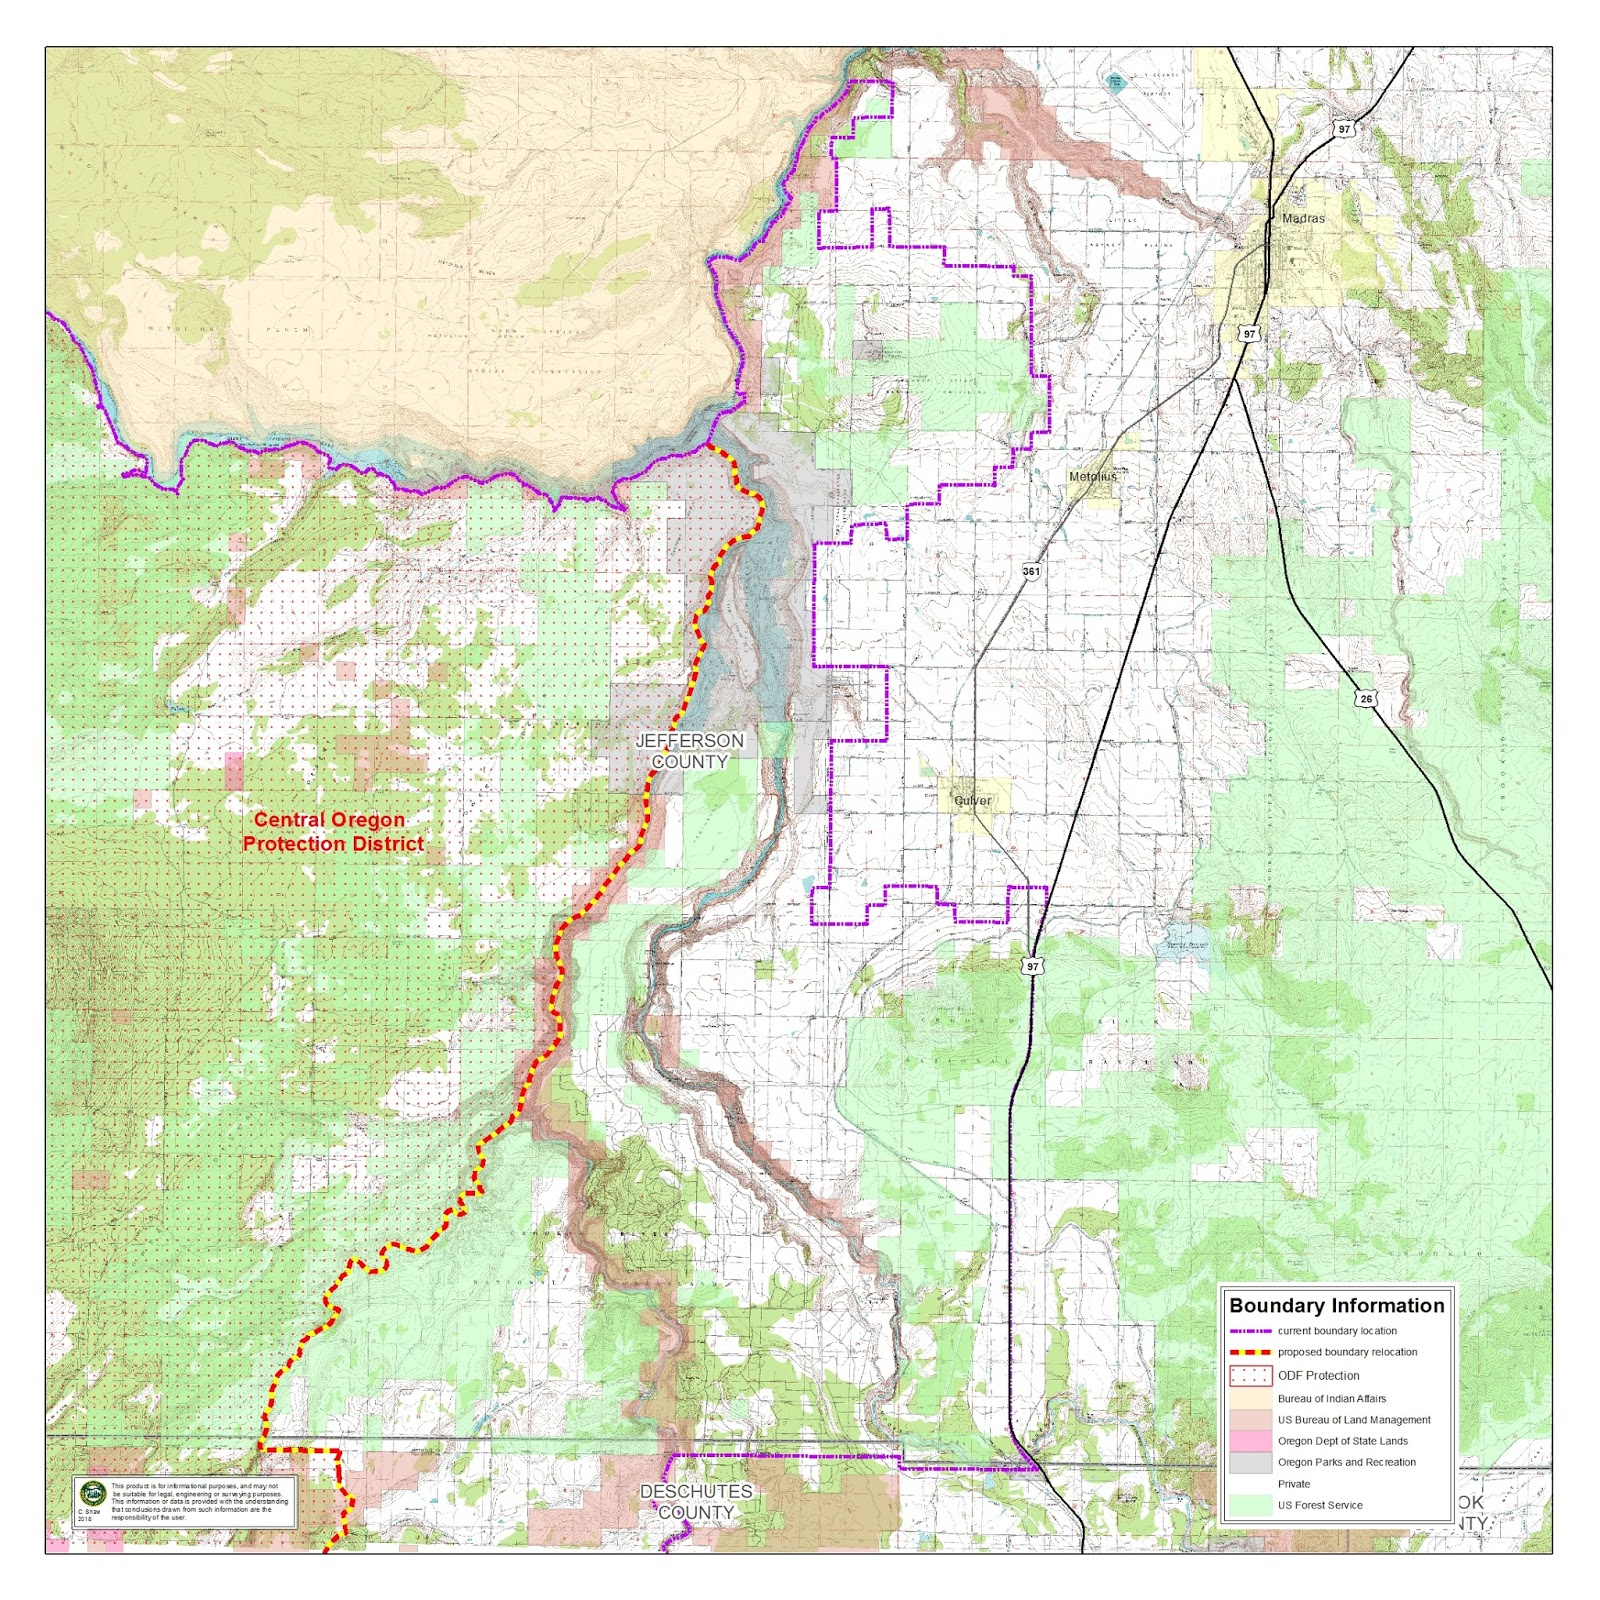 public hearing on revision to oregon department forestry central oregon forest protection district boundary